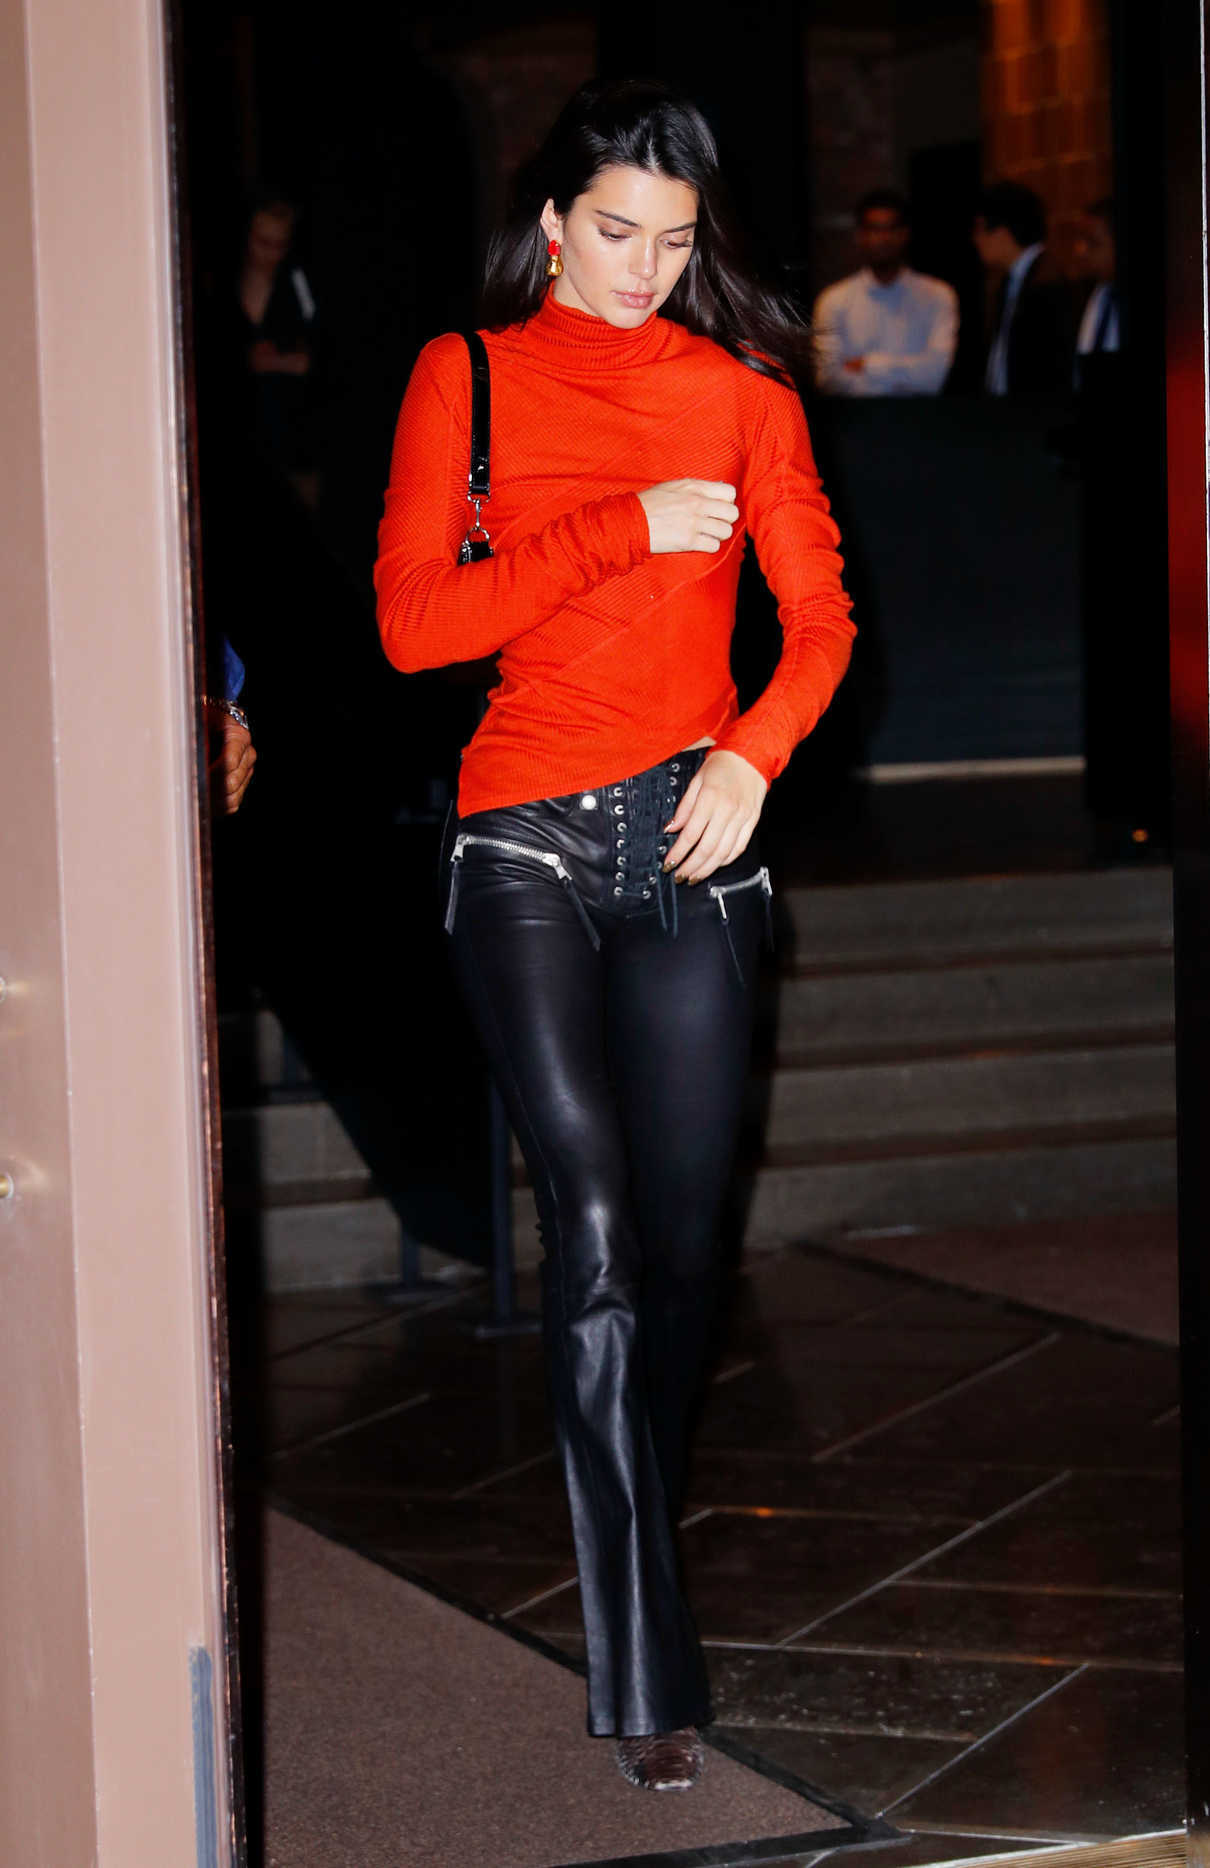 Kendall Jenner in a Red Turtleneck